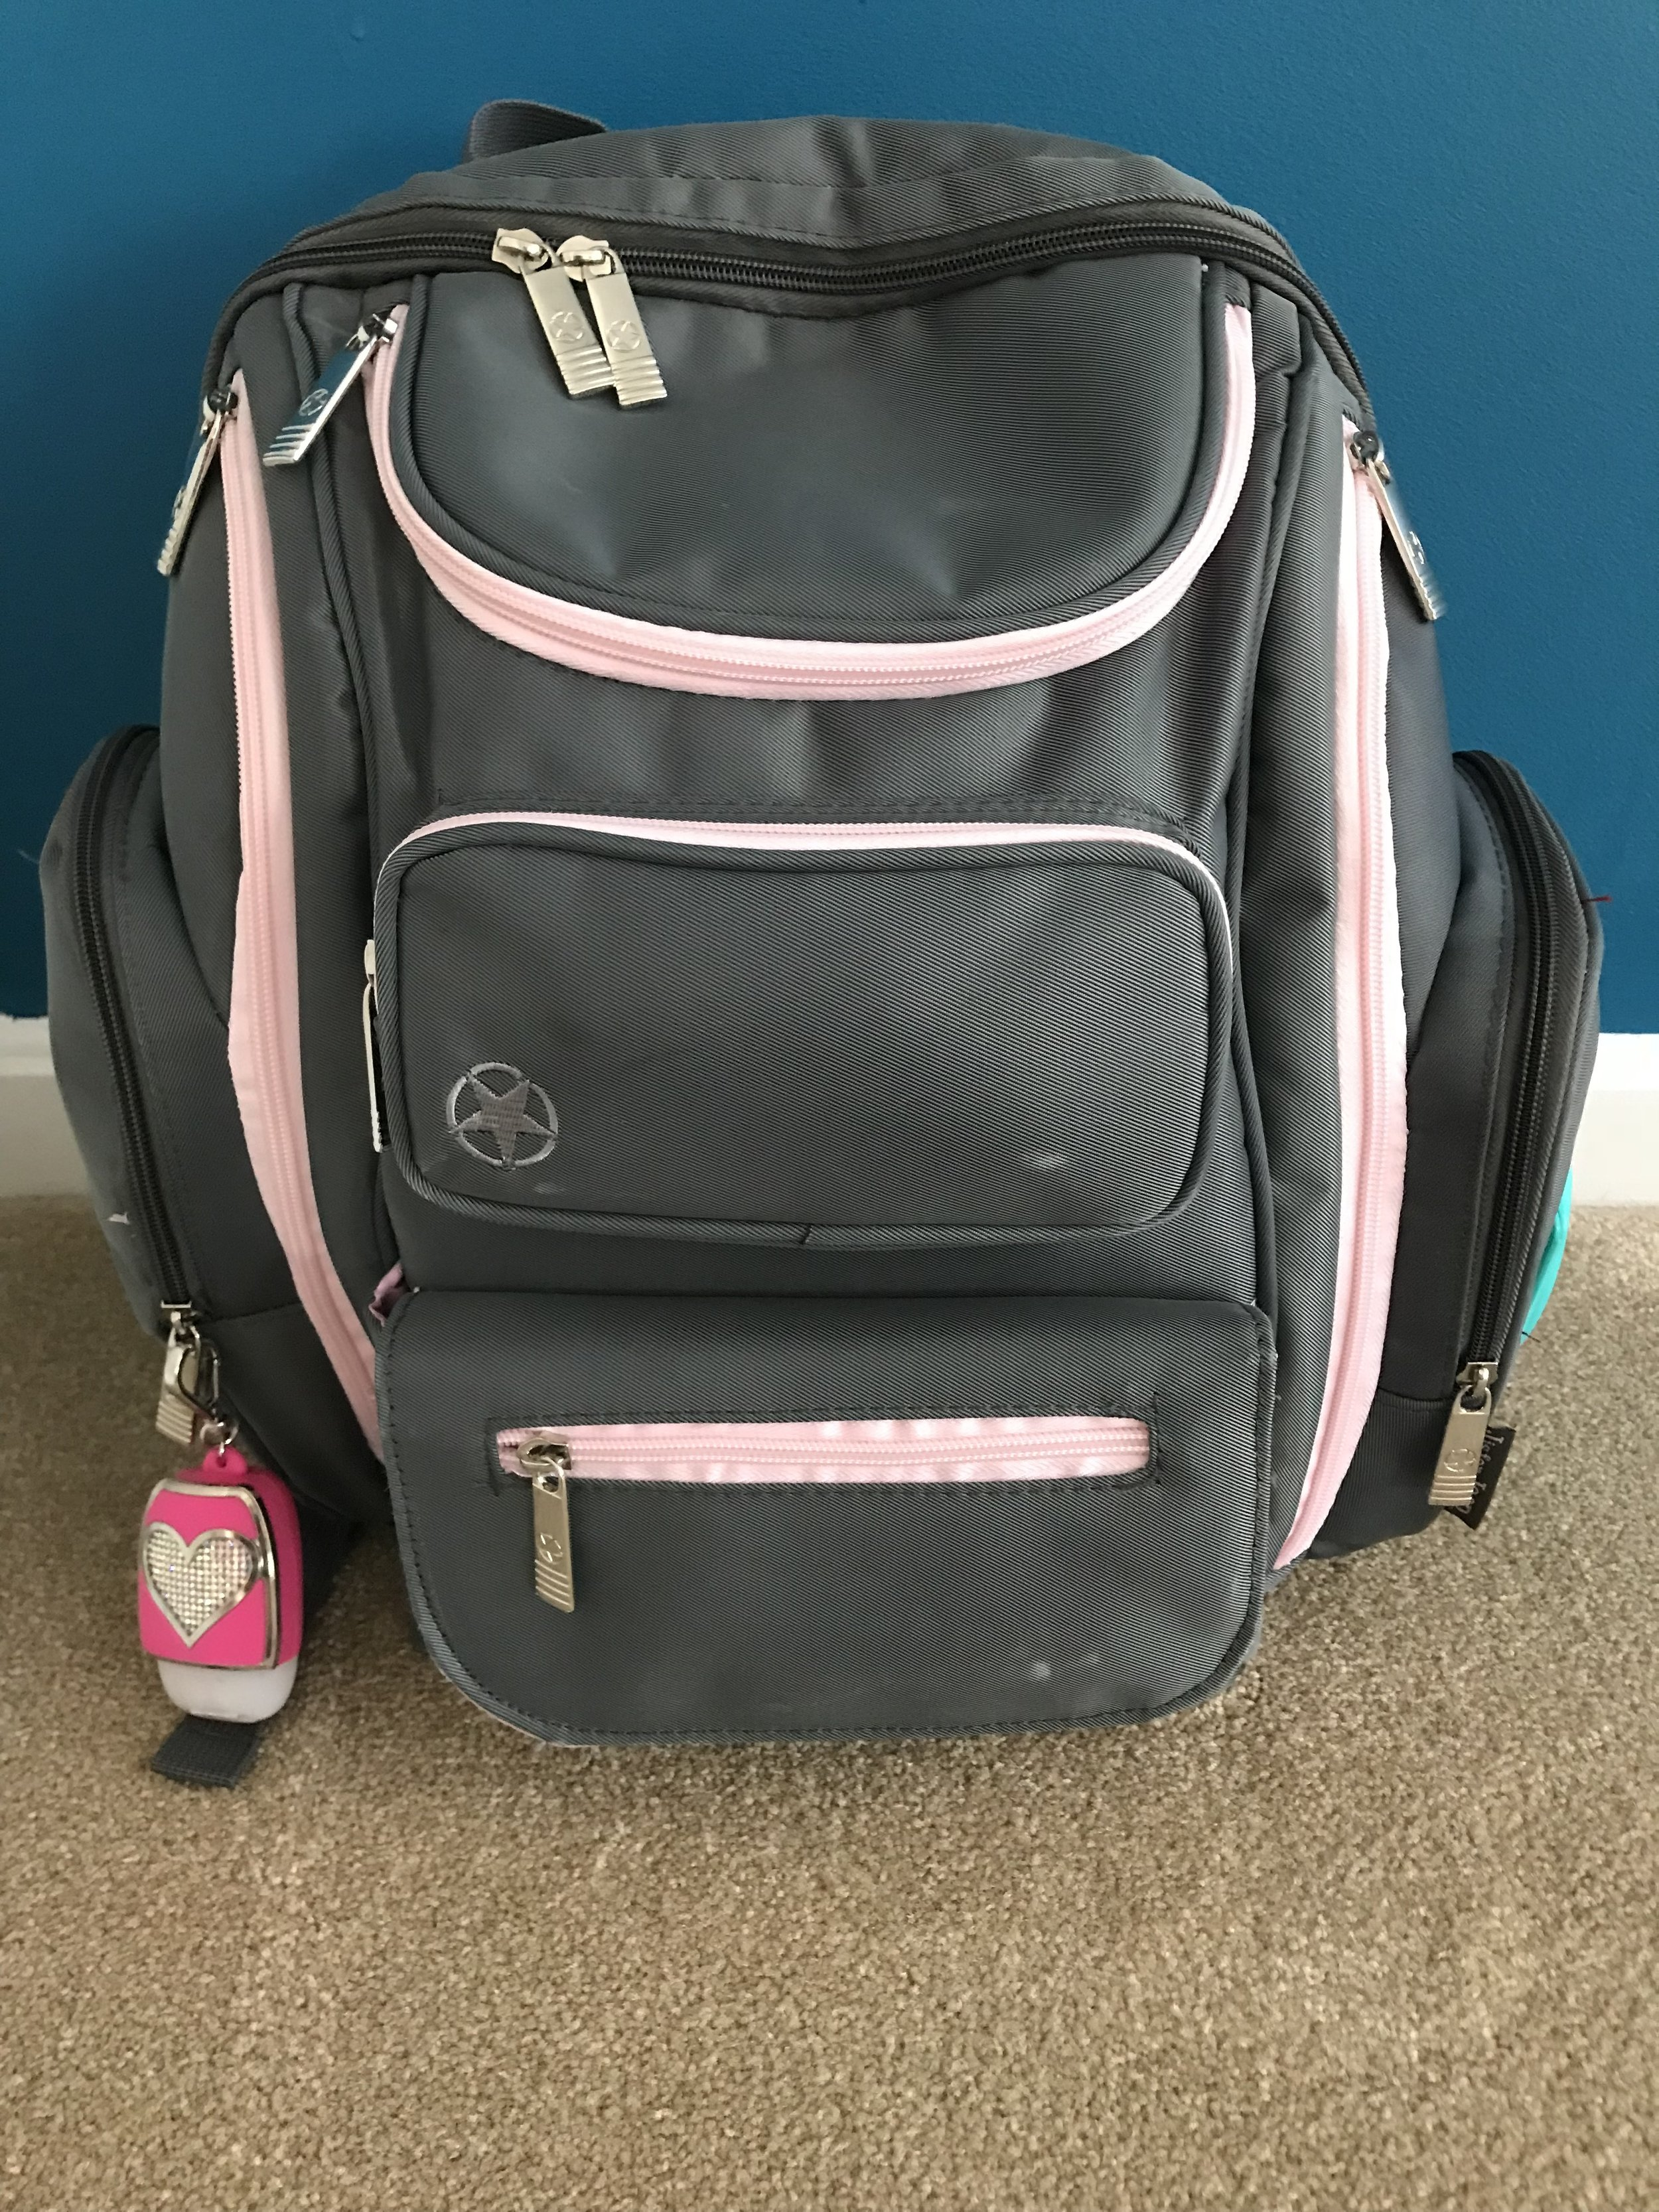 My Favorite Baby Product Series: Jeep Diaper Bag